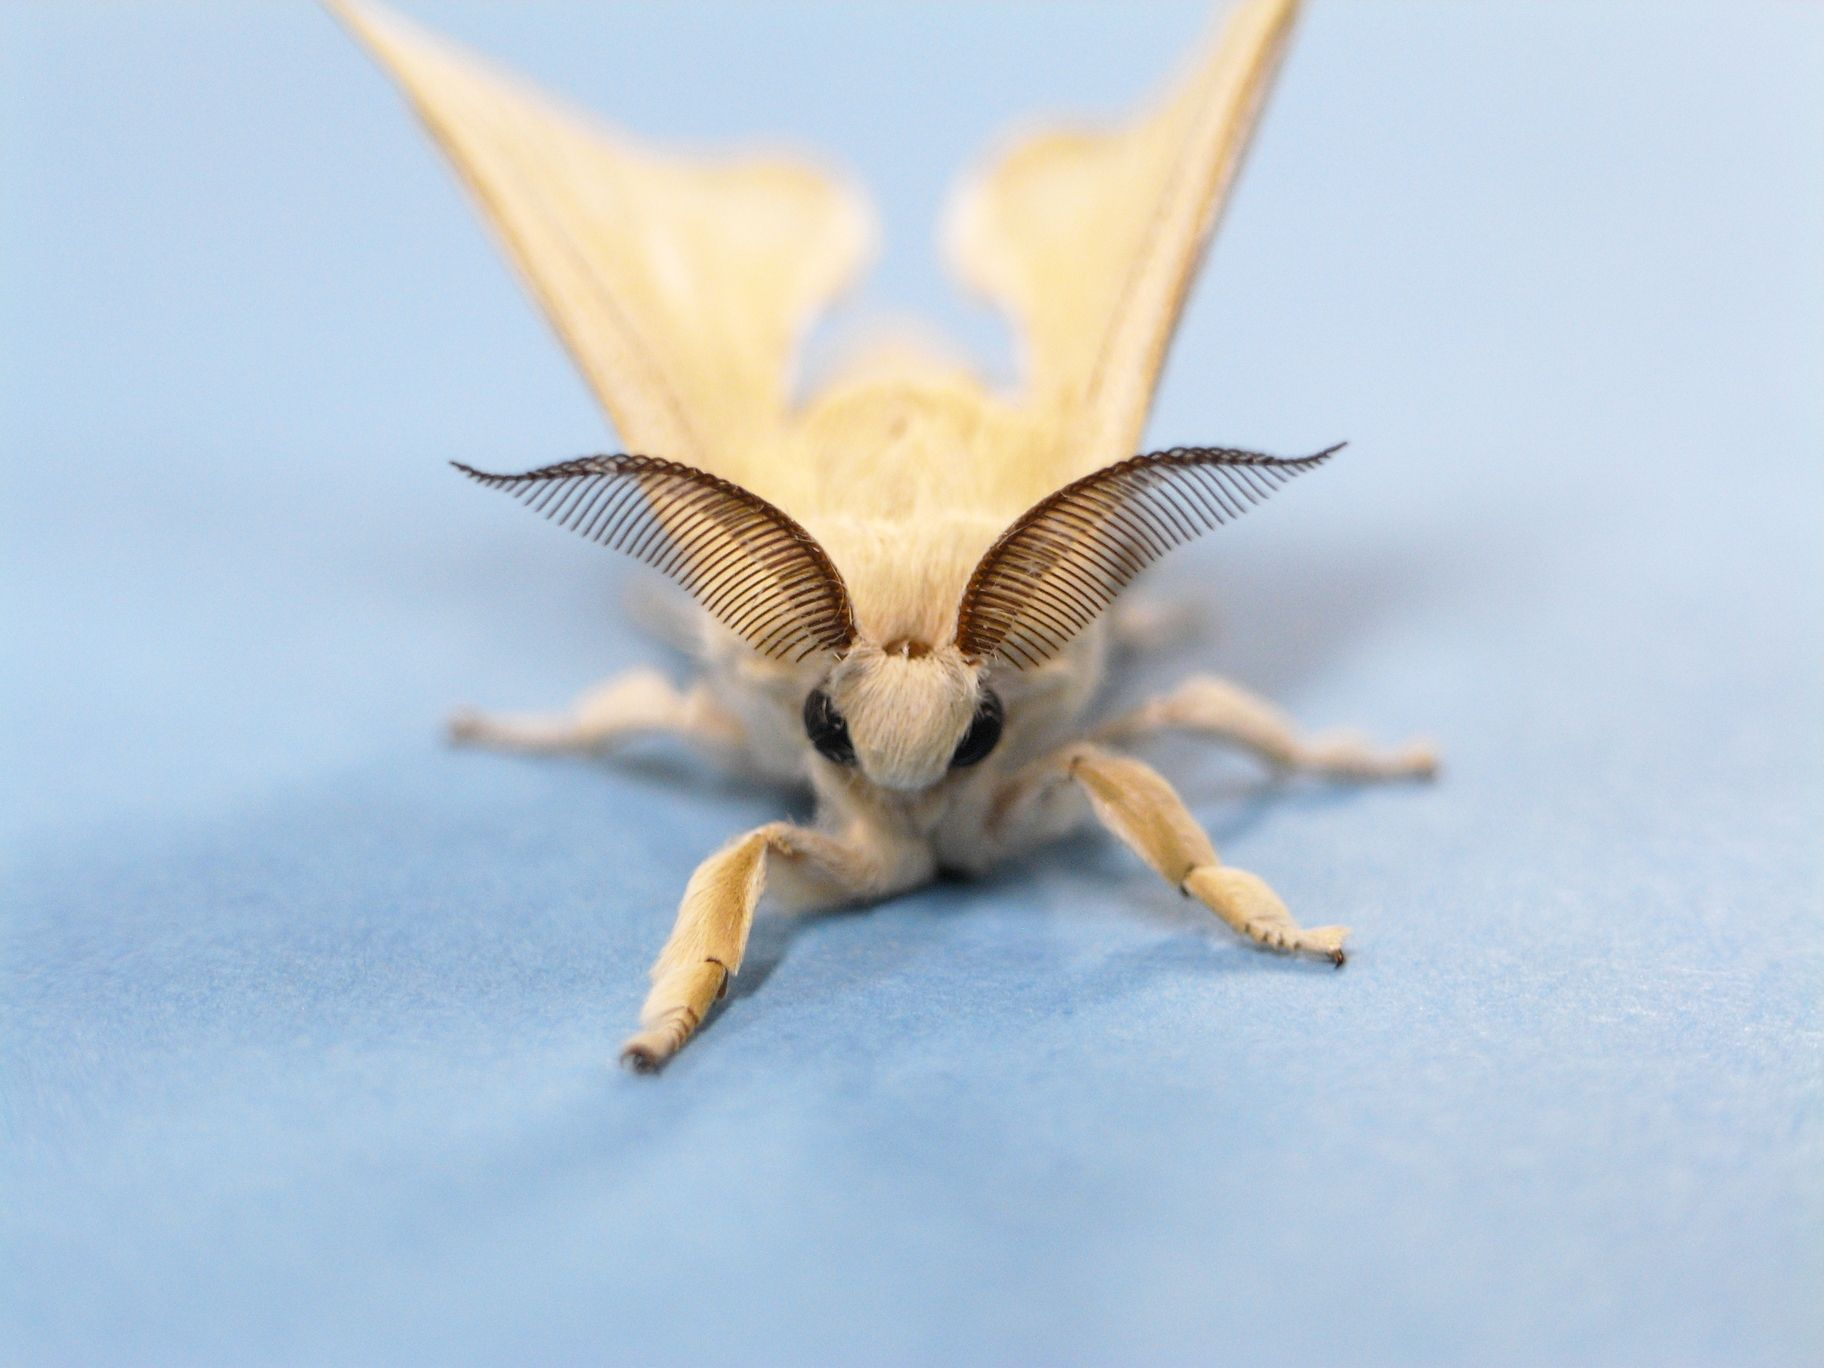 Venezuelan Poodle Moth  Fungi & Moths  Pinterest  Moth Poodle Extraordinary Small Moths In Bathroom 2018